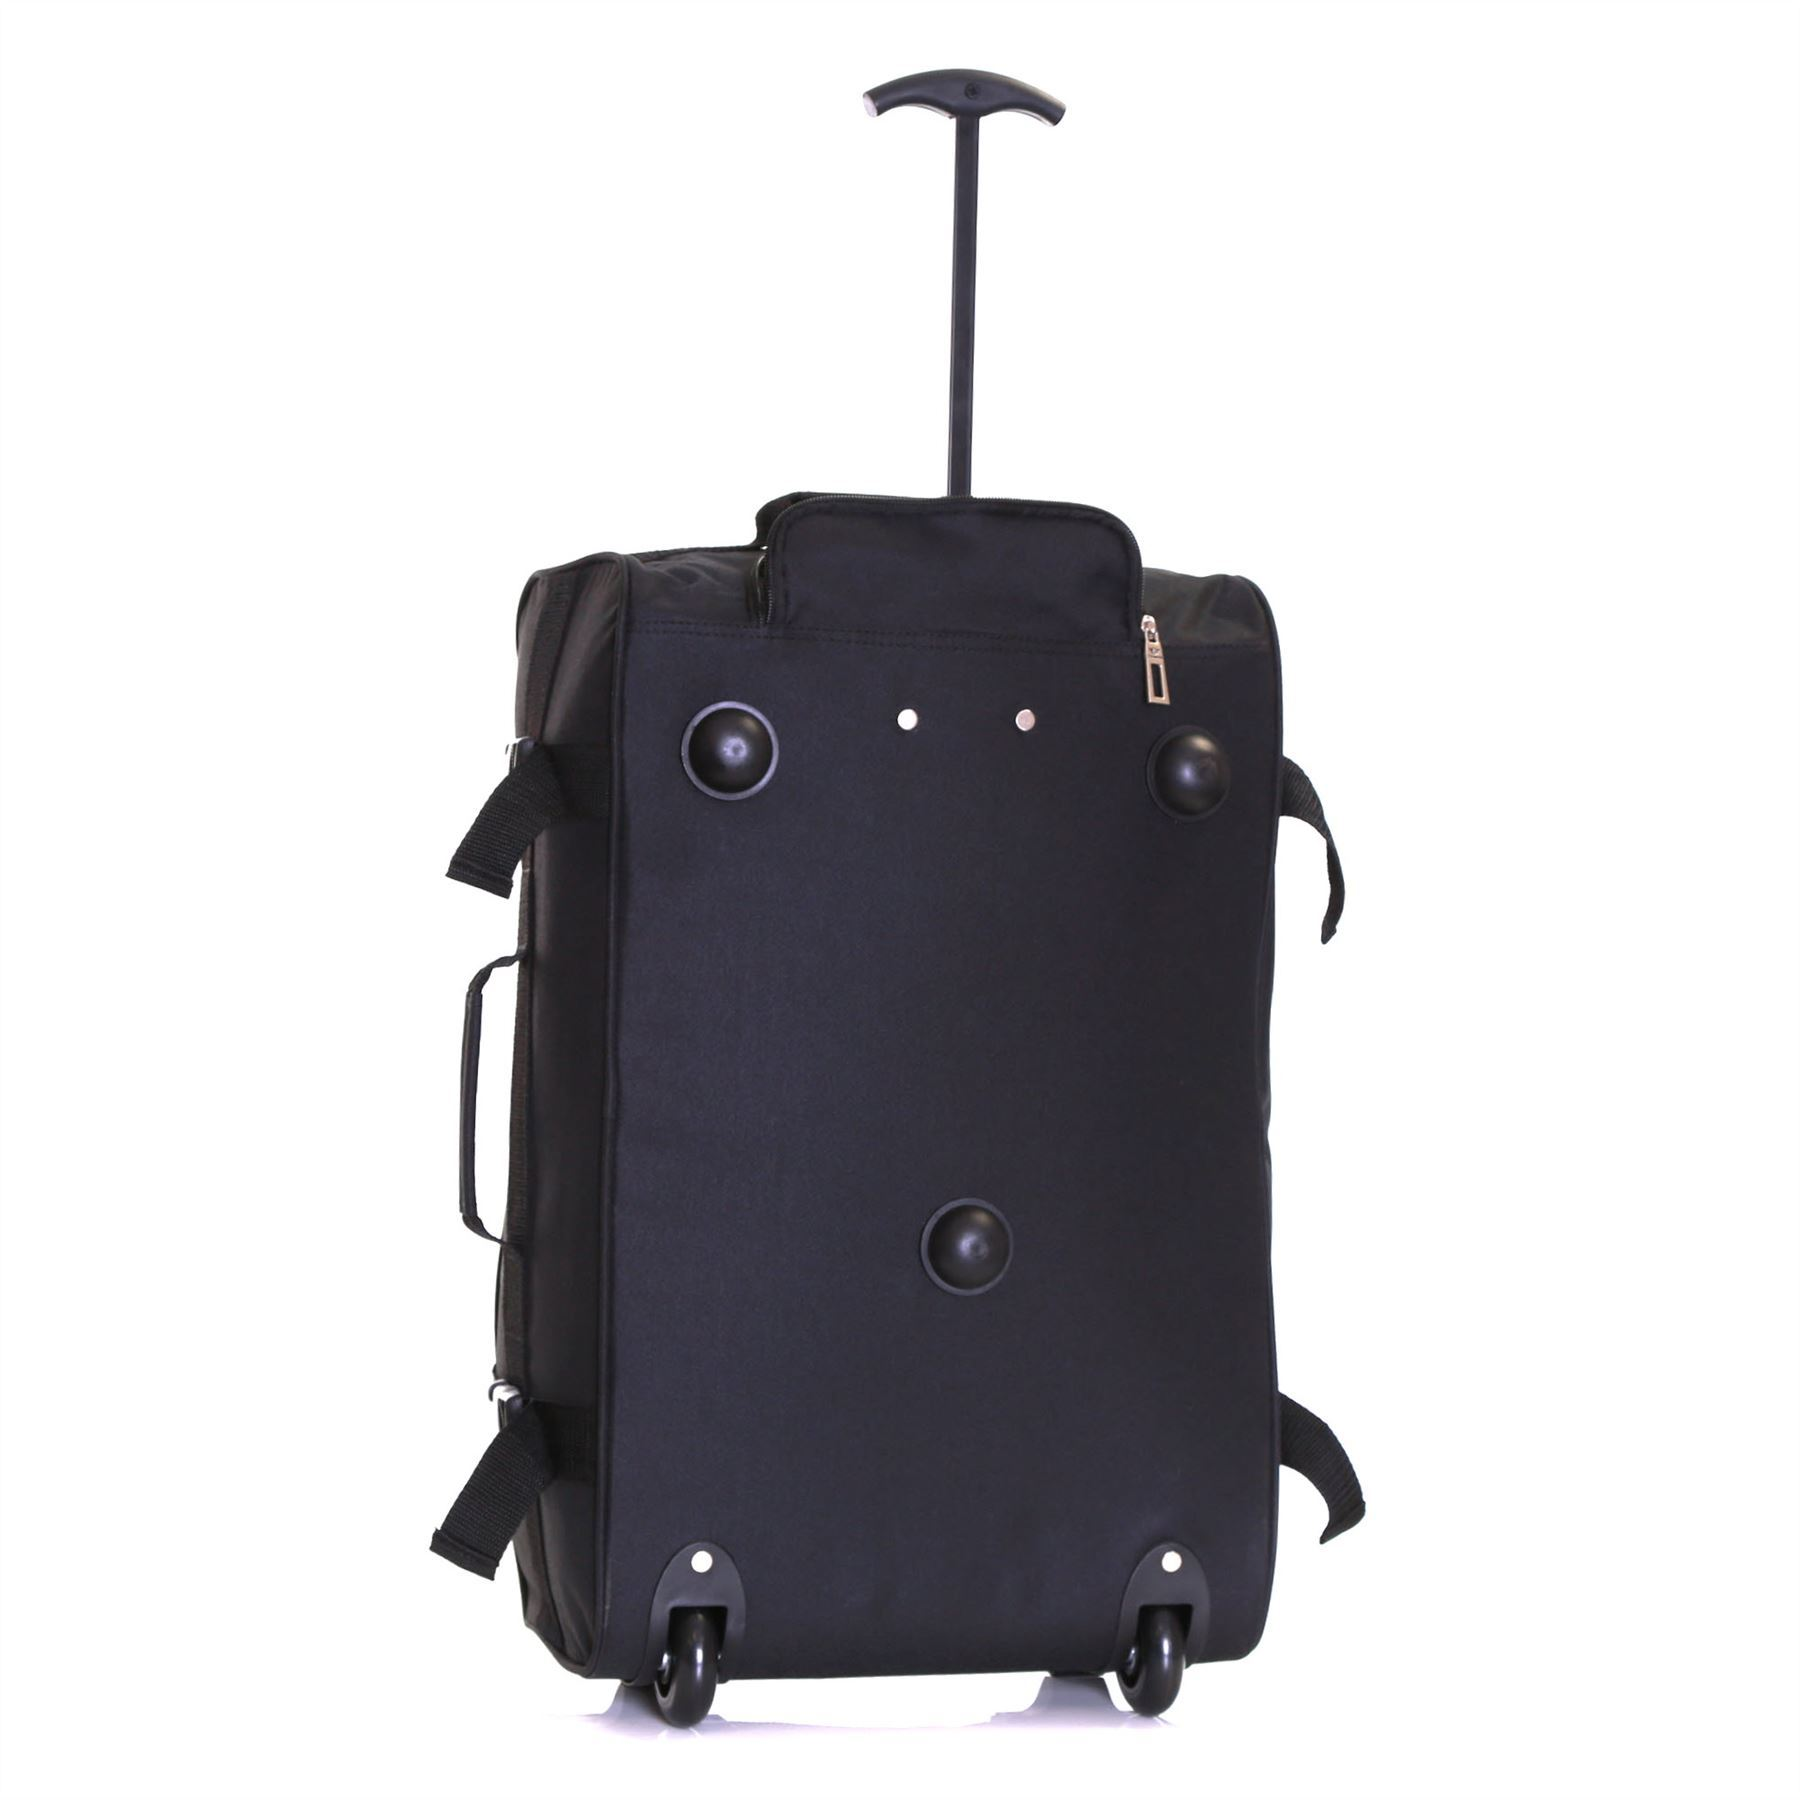 Ryanair-Easyjet-Set-of-2-Cabin-Approved-Hand-Trolley-Suitcases-Luggage-Case-Bags thumbnail 4